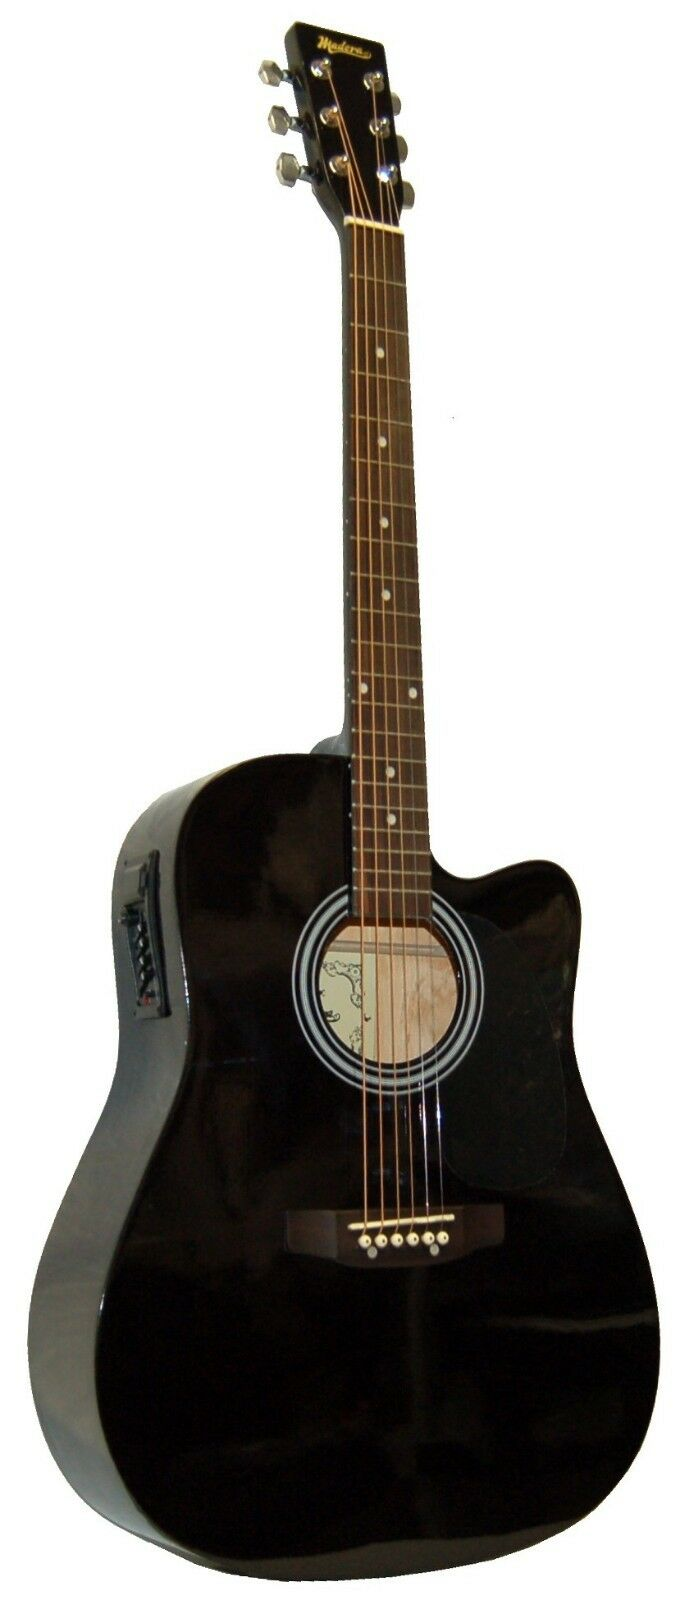 NEW MADERA FULL Größe schwarz ACOUSTIC-ELECTRIC CUTAWAY GUITAR